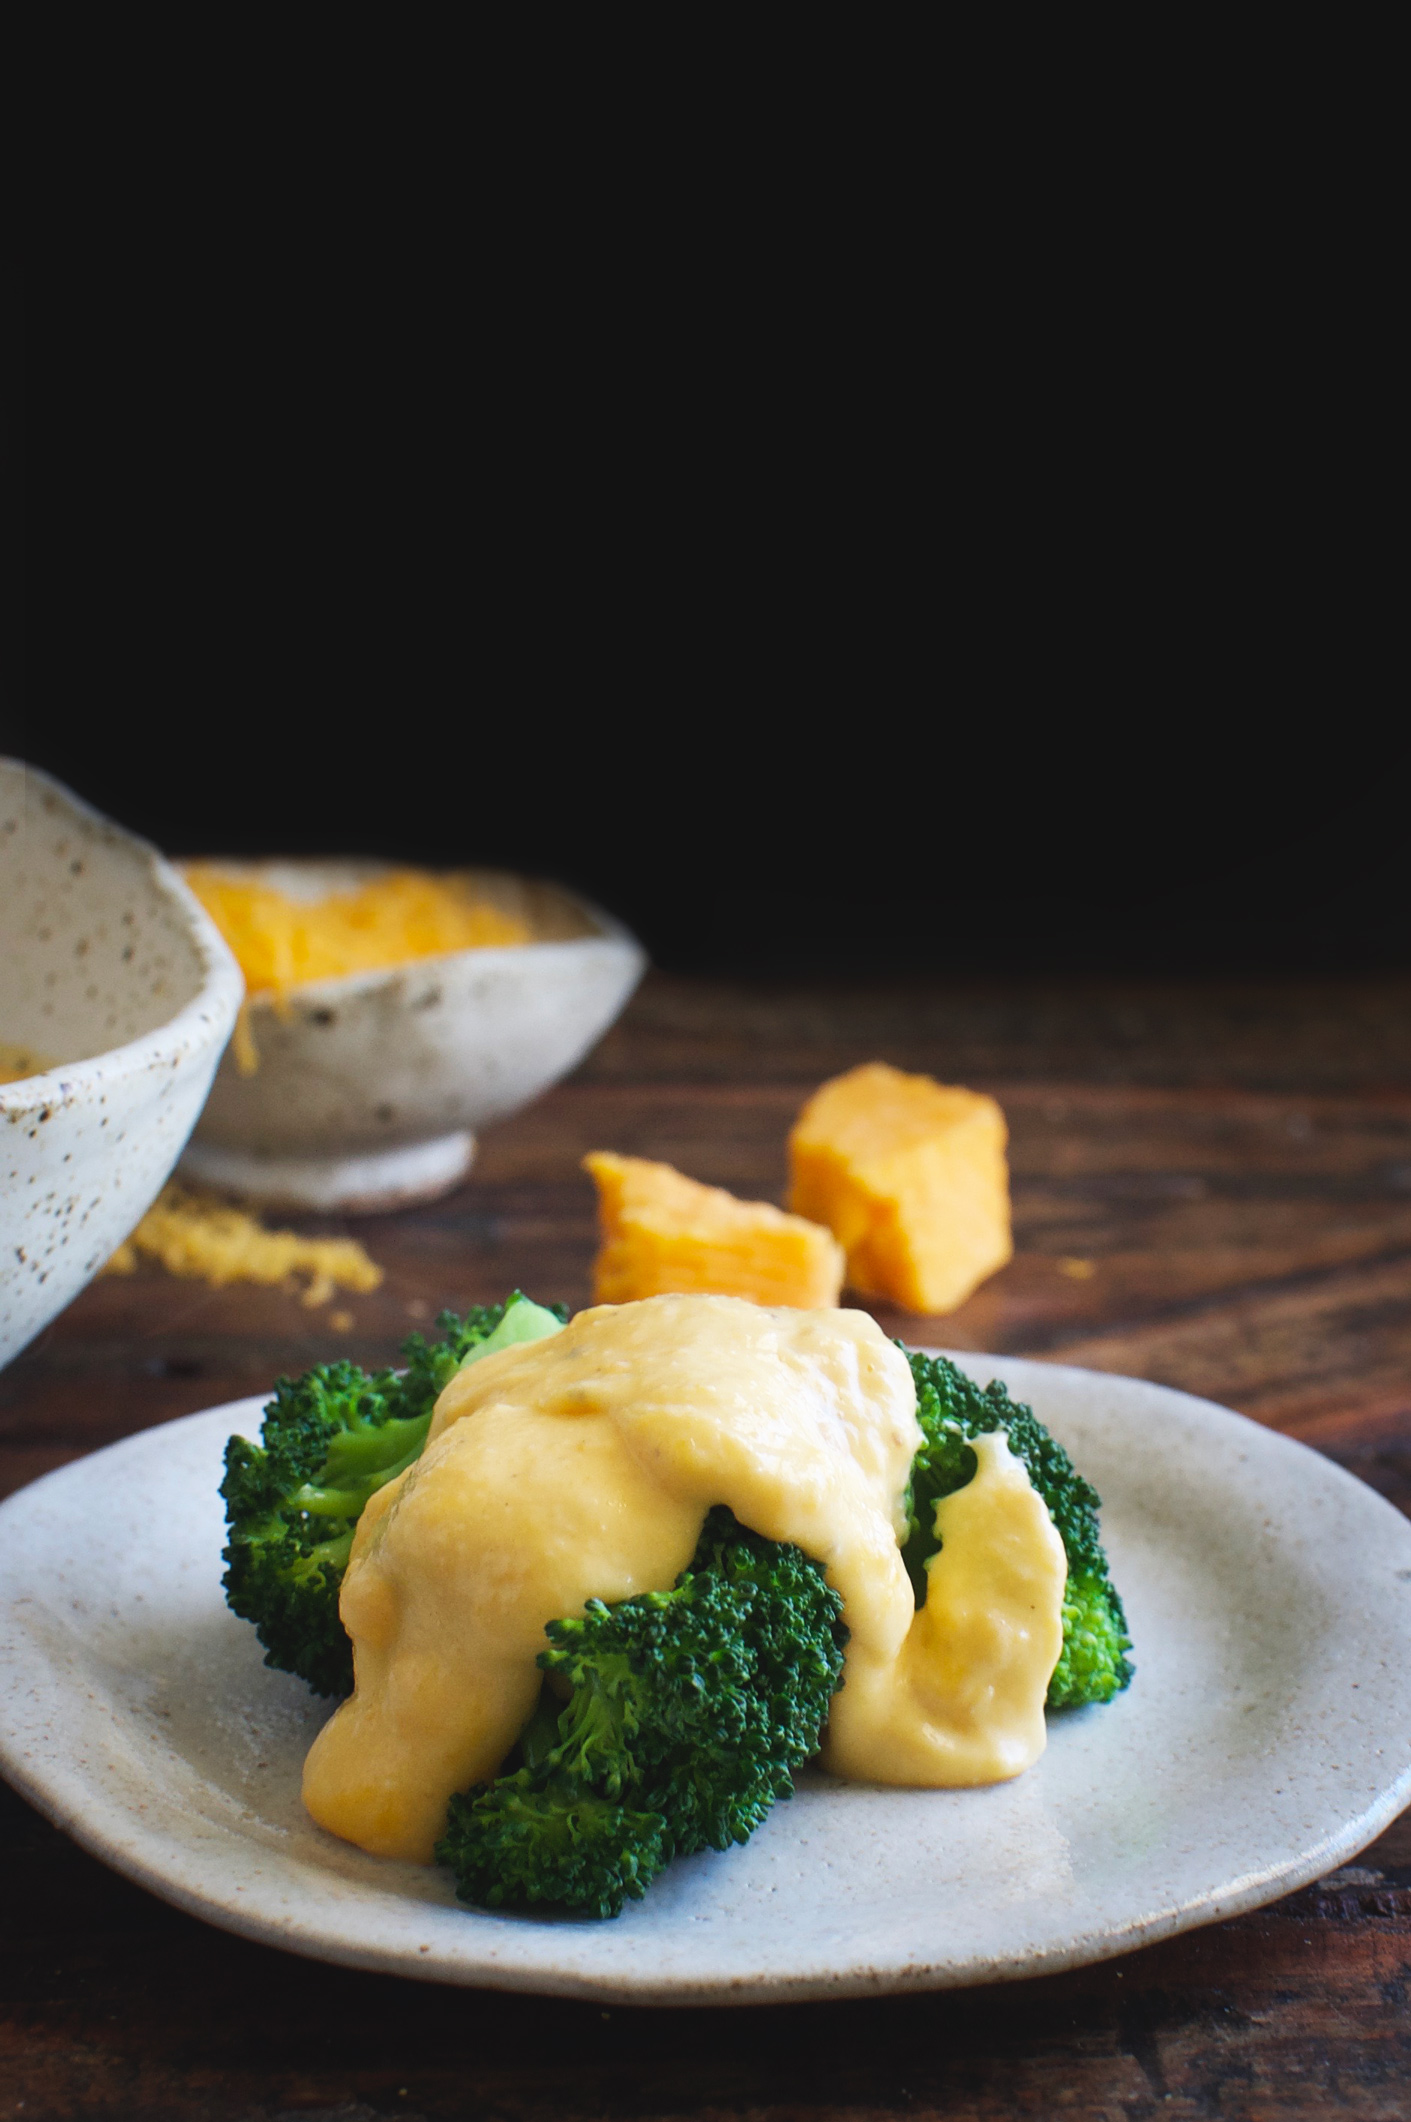 Low-Carb Cheddar Cheese Sauce over broccoli.